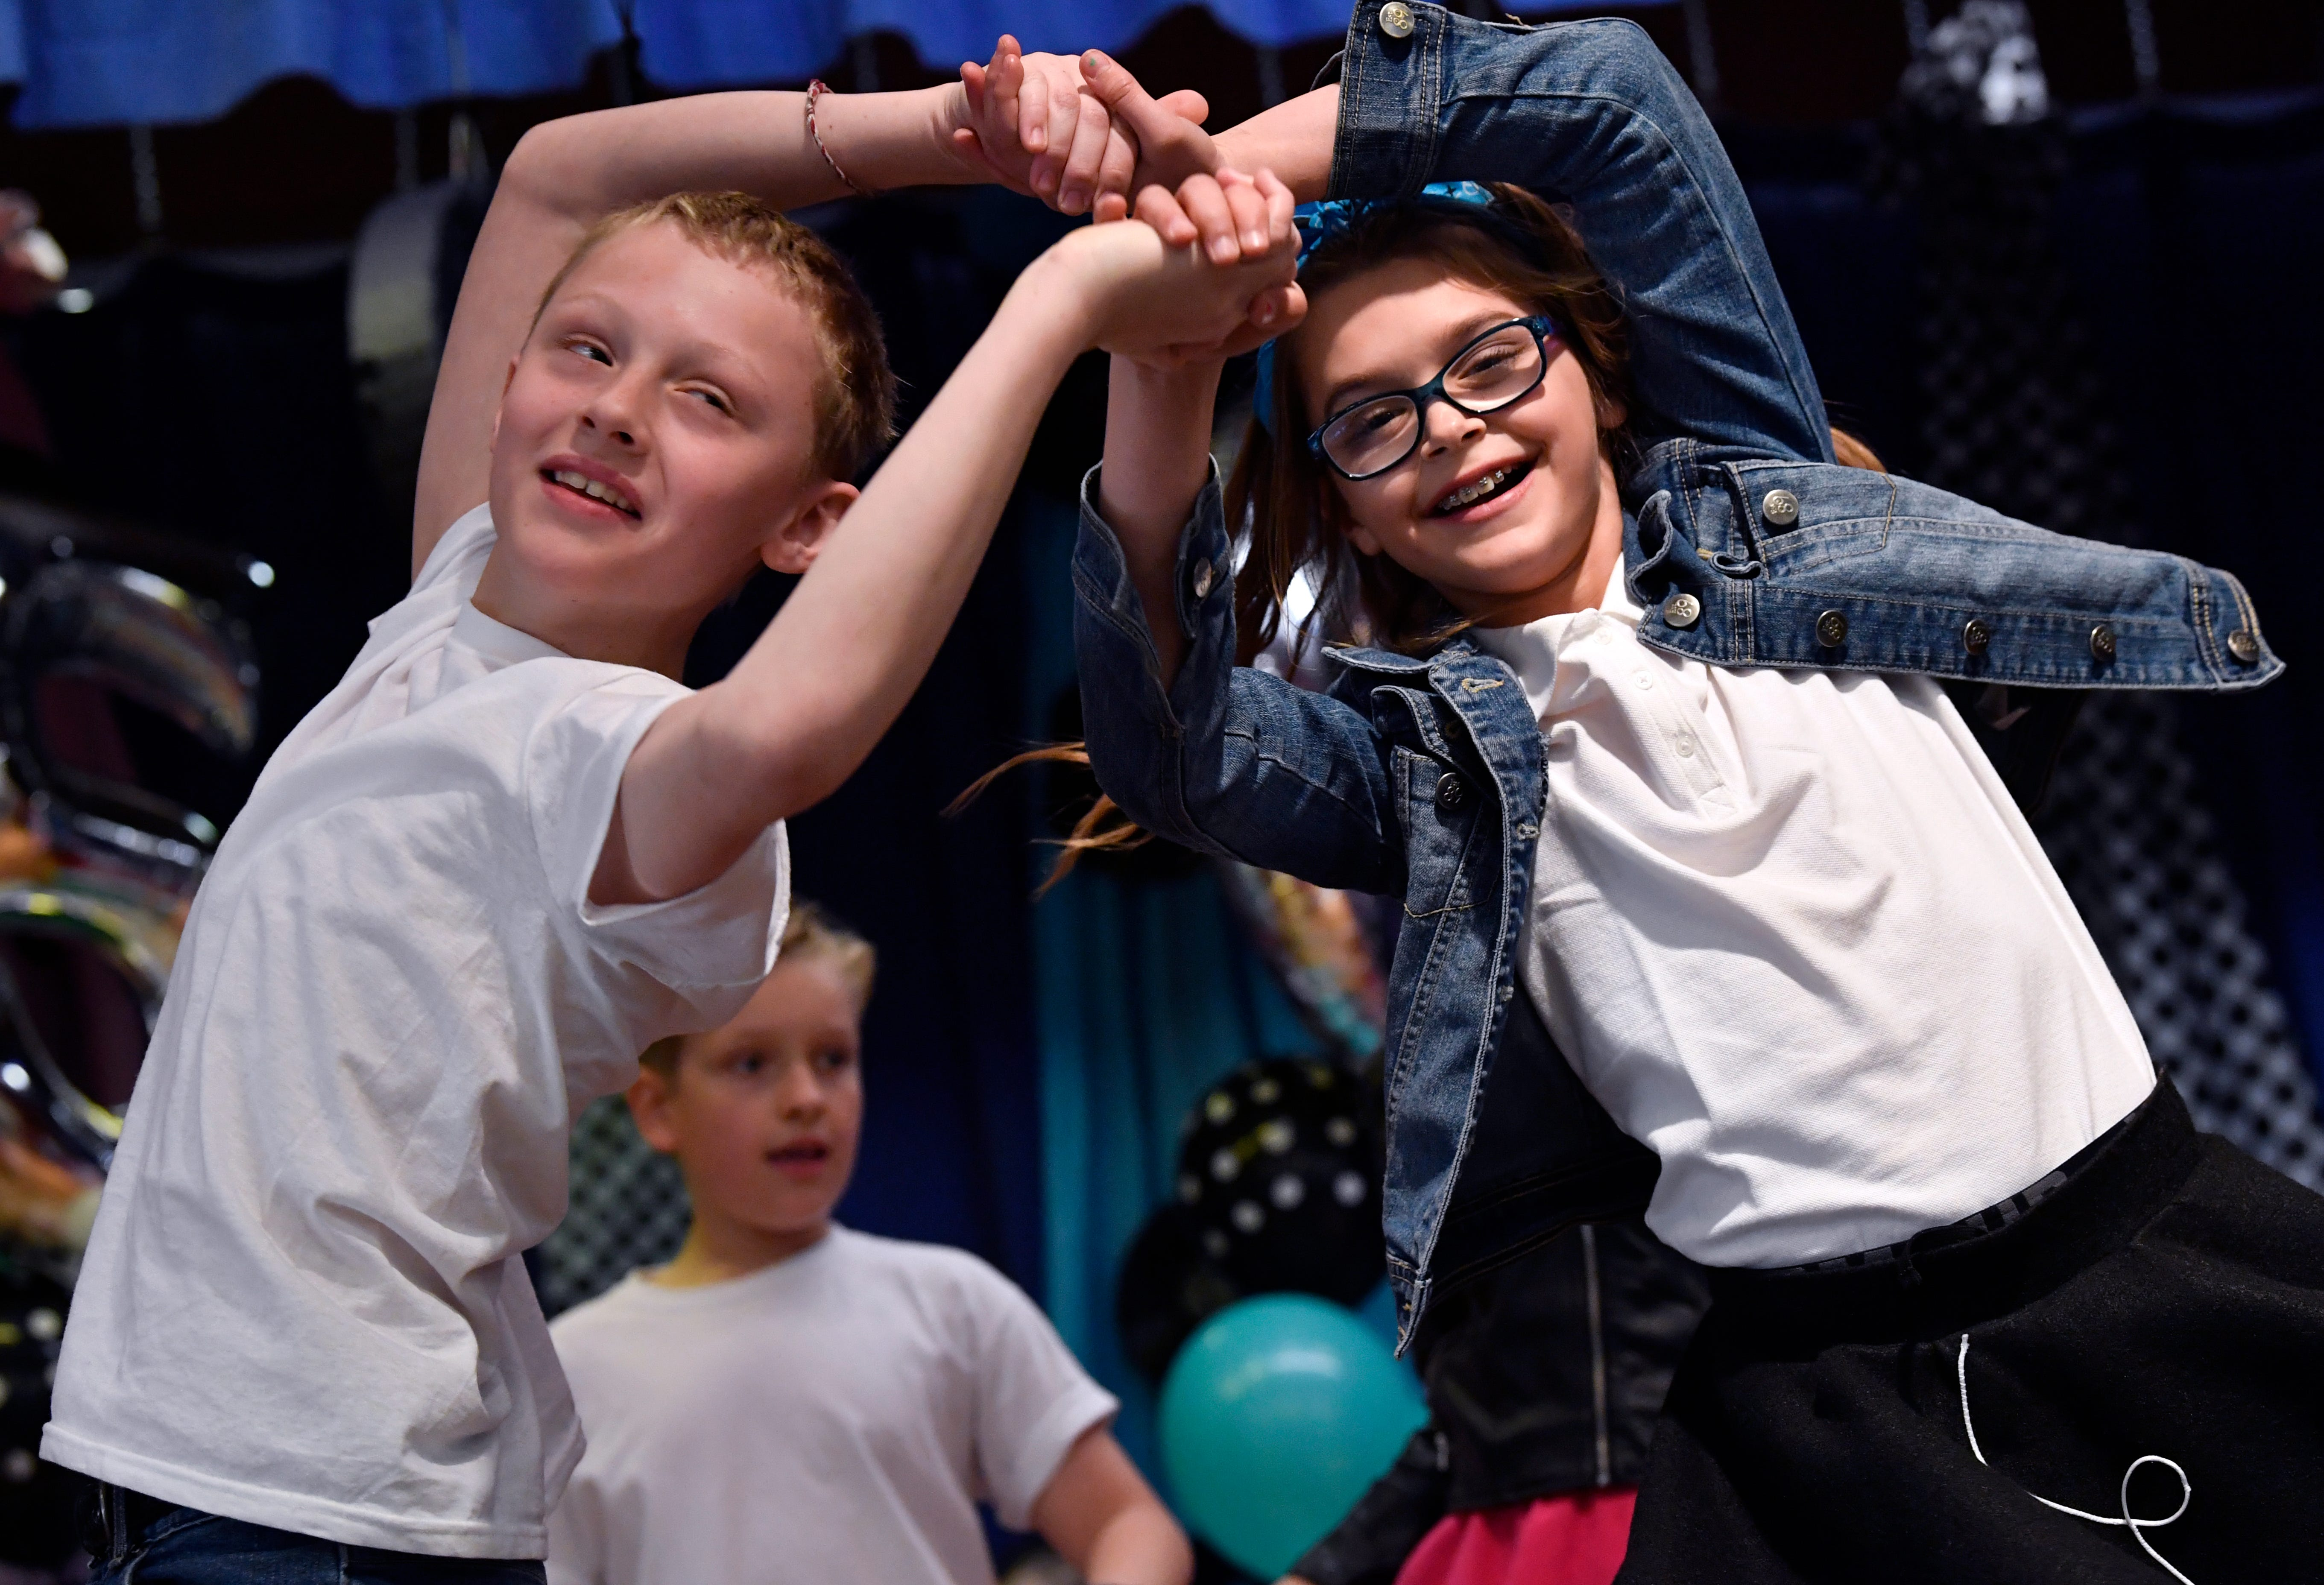 Fourth-graders Madden Cagle (left) and Payton Ellis, dance during Fifties Day at Austin Elementary School Jan. 25, 2019. Students from all grades performed the Twist, the Stroll, and the Hand Jive for family and friends.